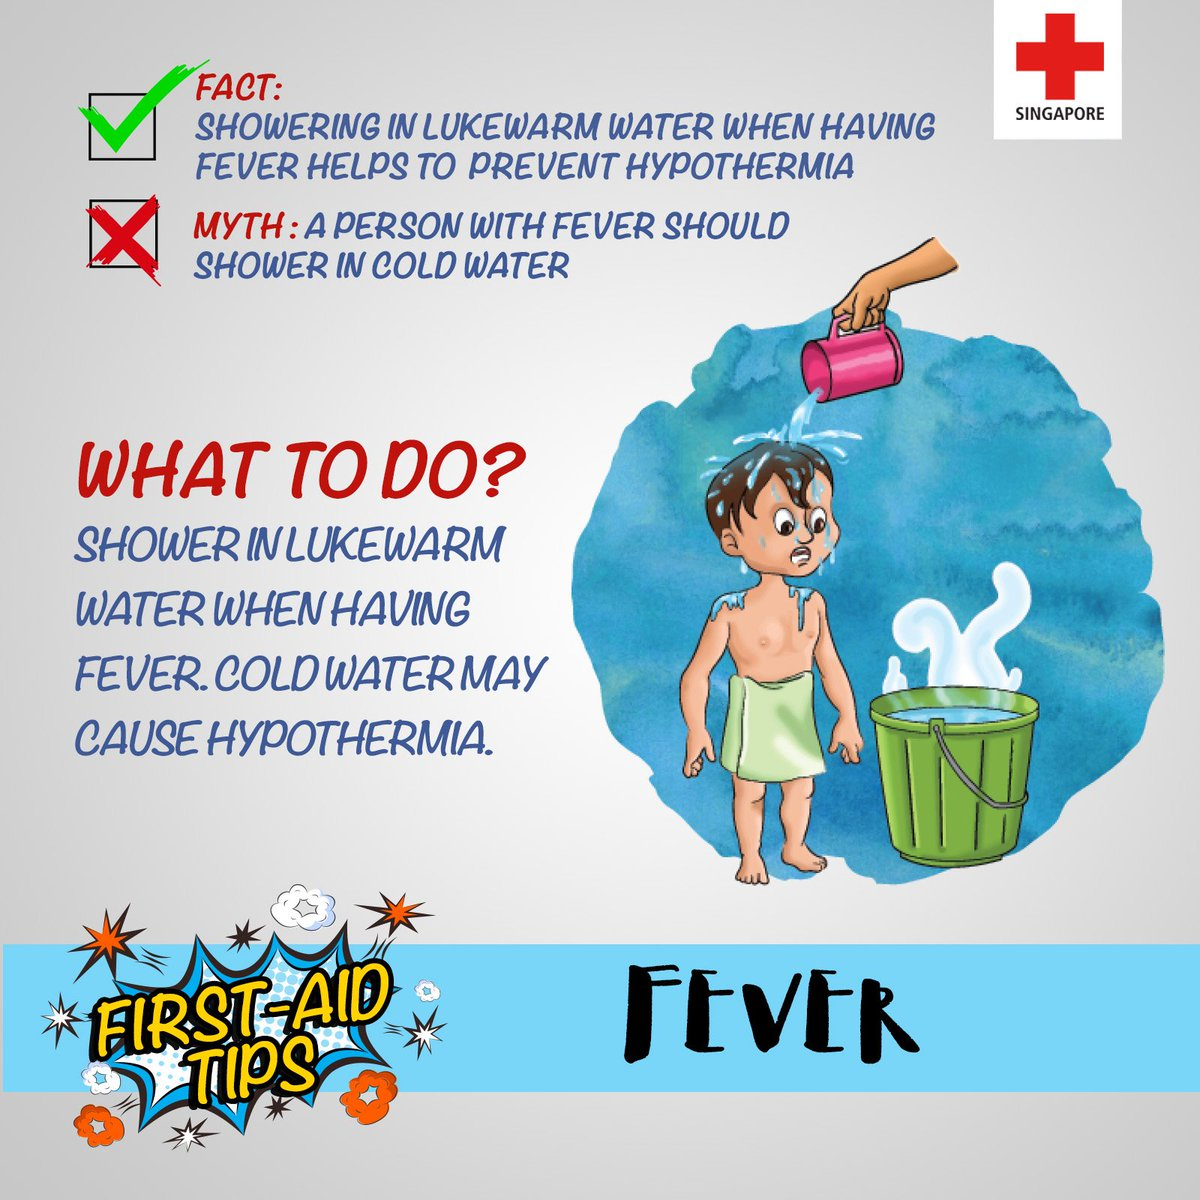 Singapore Red Cross On Twitter Didyouknow A Person With Fever